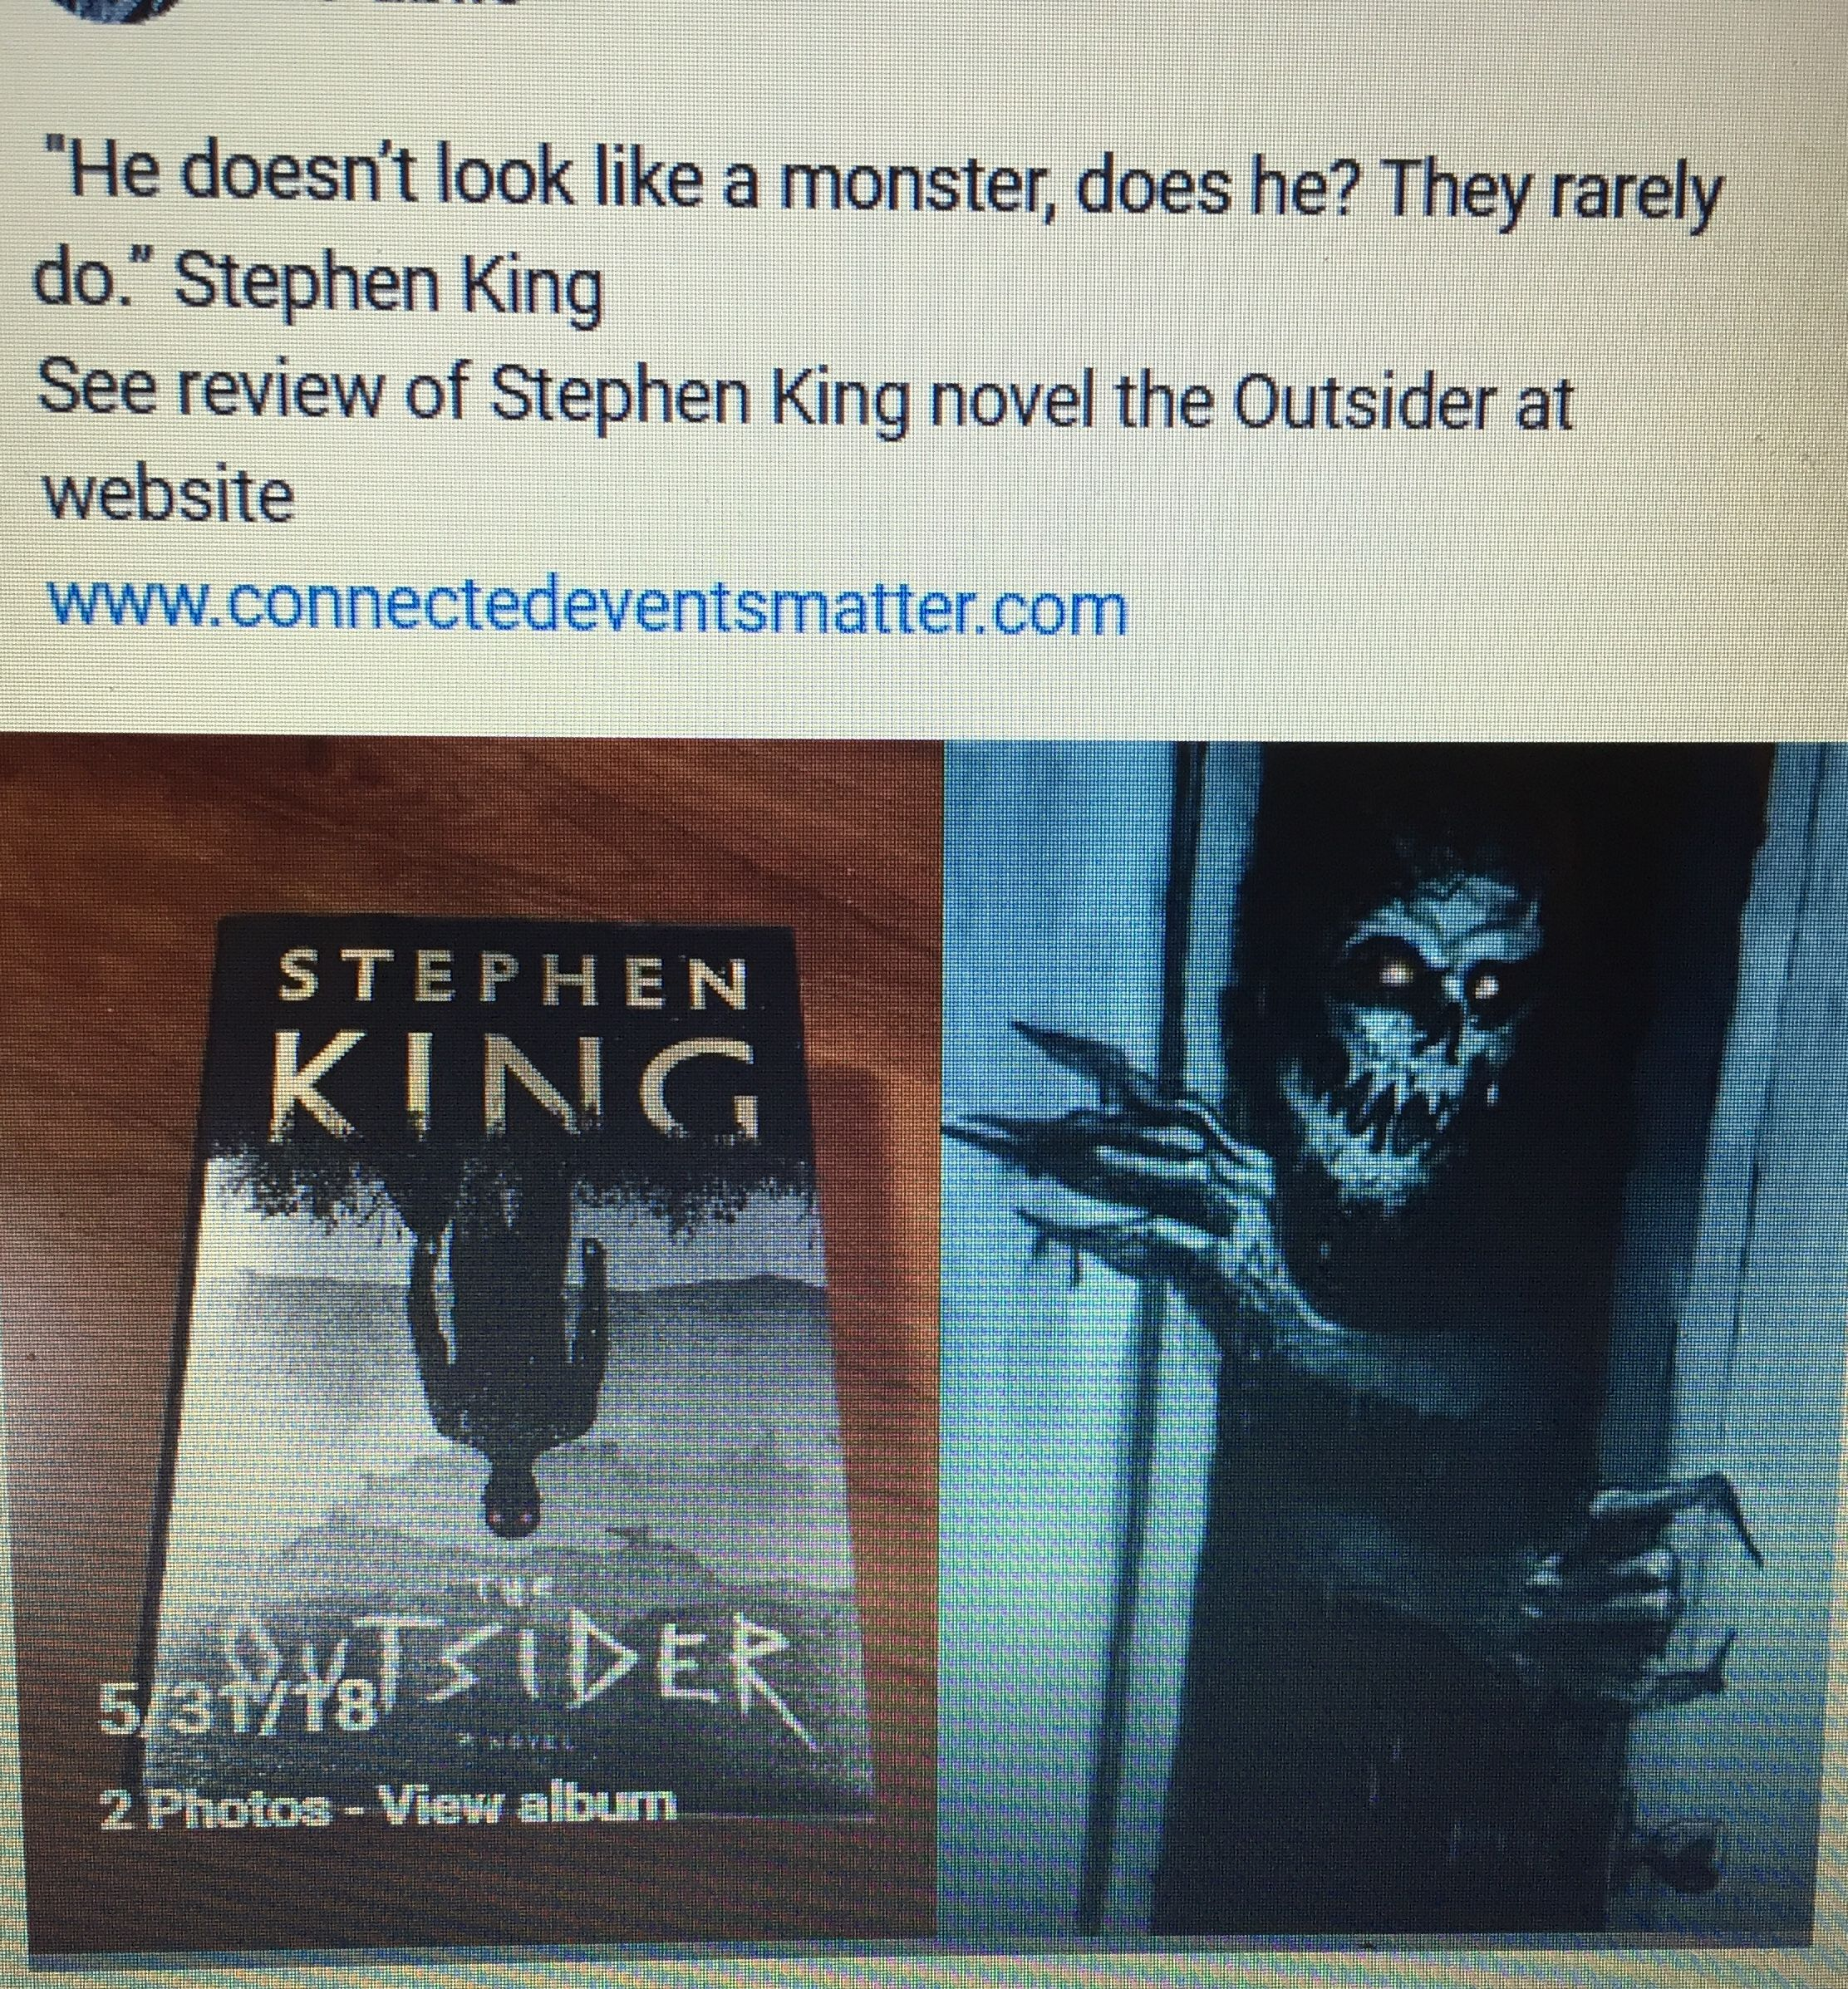 Stephen King's new book the outsiders is well written you won't want to put  it down see you review that website. www.connectedeventsmatter.com